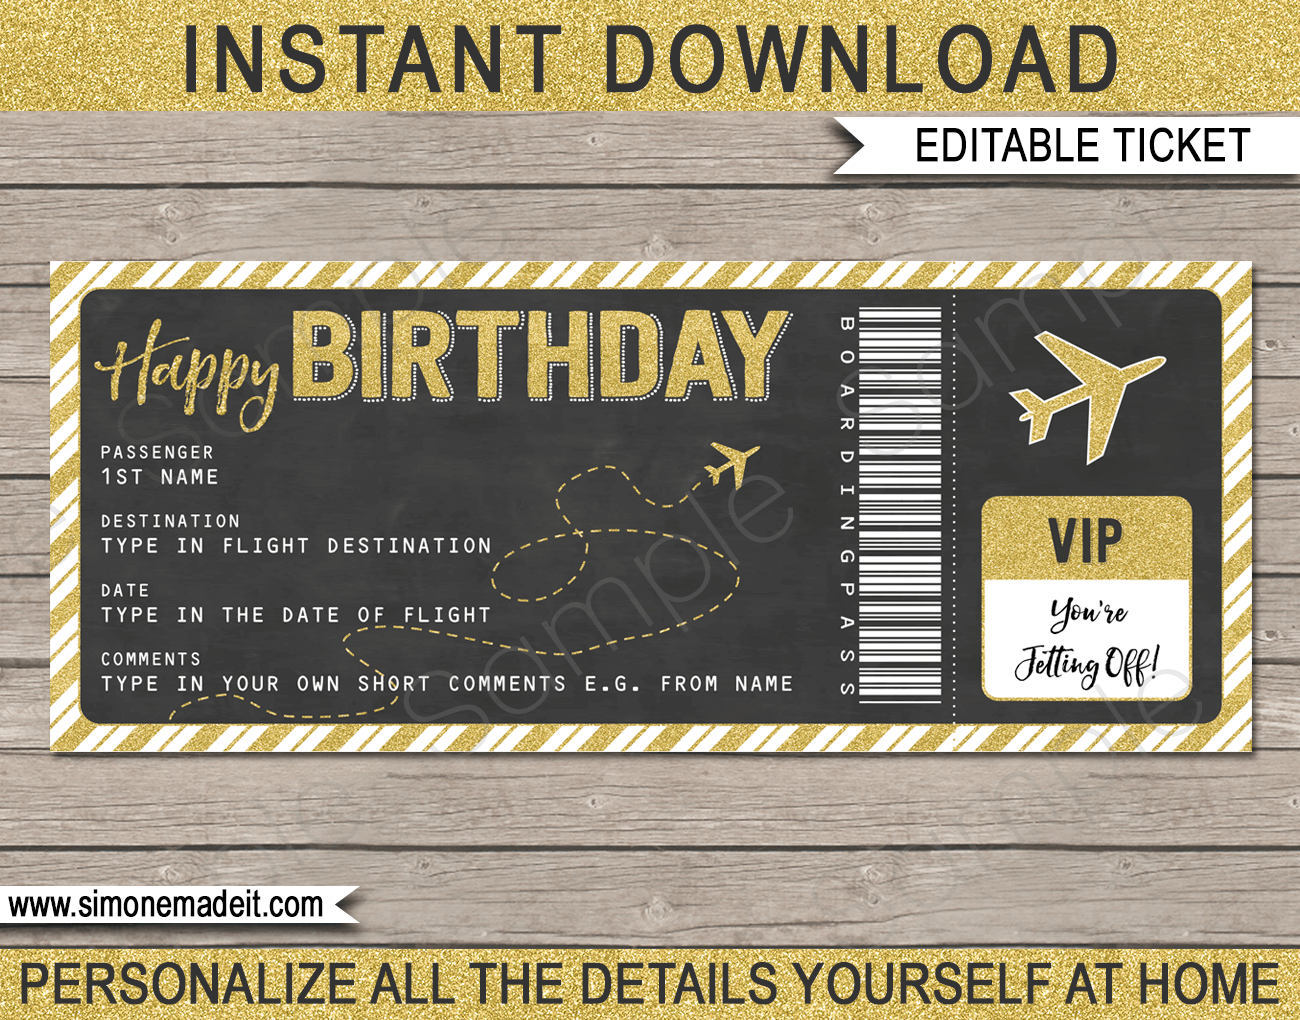 Printable Birthday Boarding Pass Gift Ticket template | Gold Glitter & Chalkboard | Surprise Trip, Flight Getaway, Holiday, Vacation | Faux Fake Boarding Pass | Birthday Present | DIY Editable Template | Instant Download via giftsbysimonemadeit.com